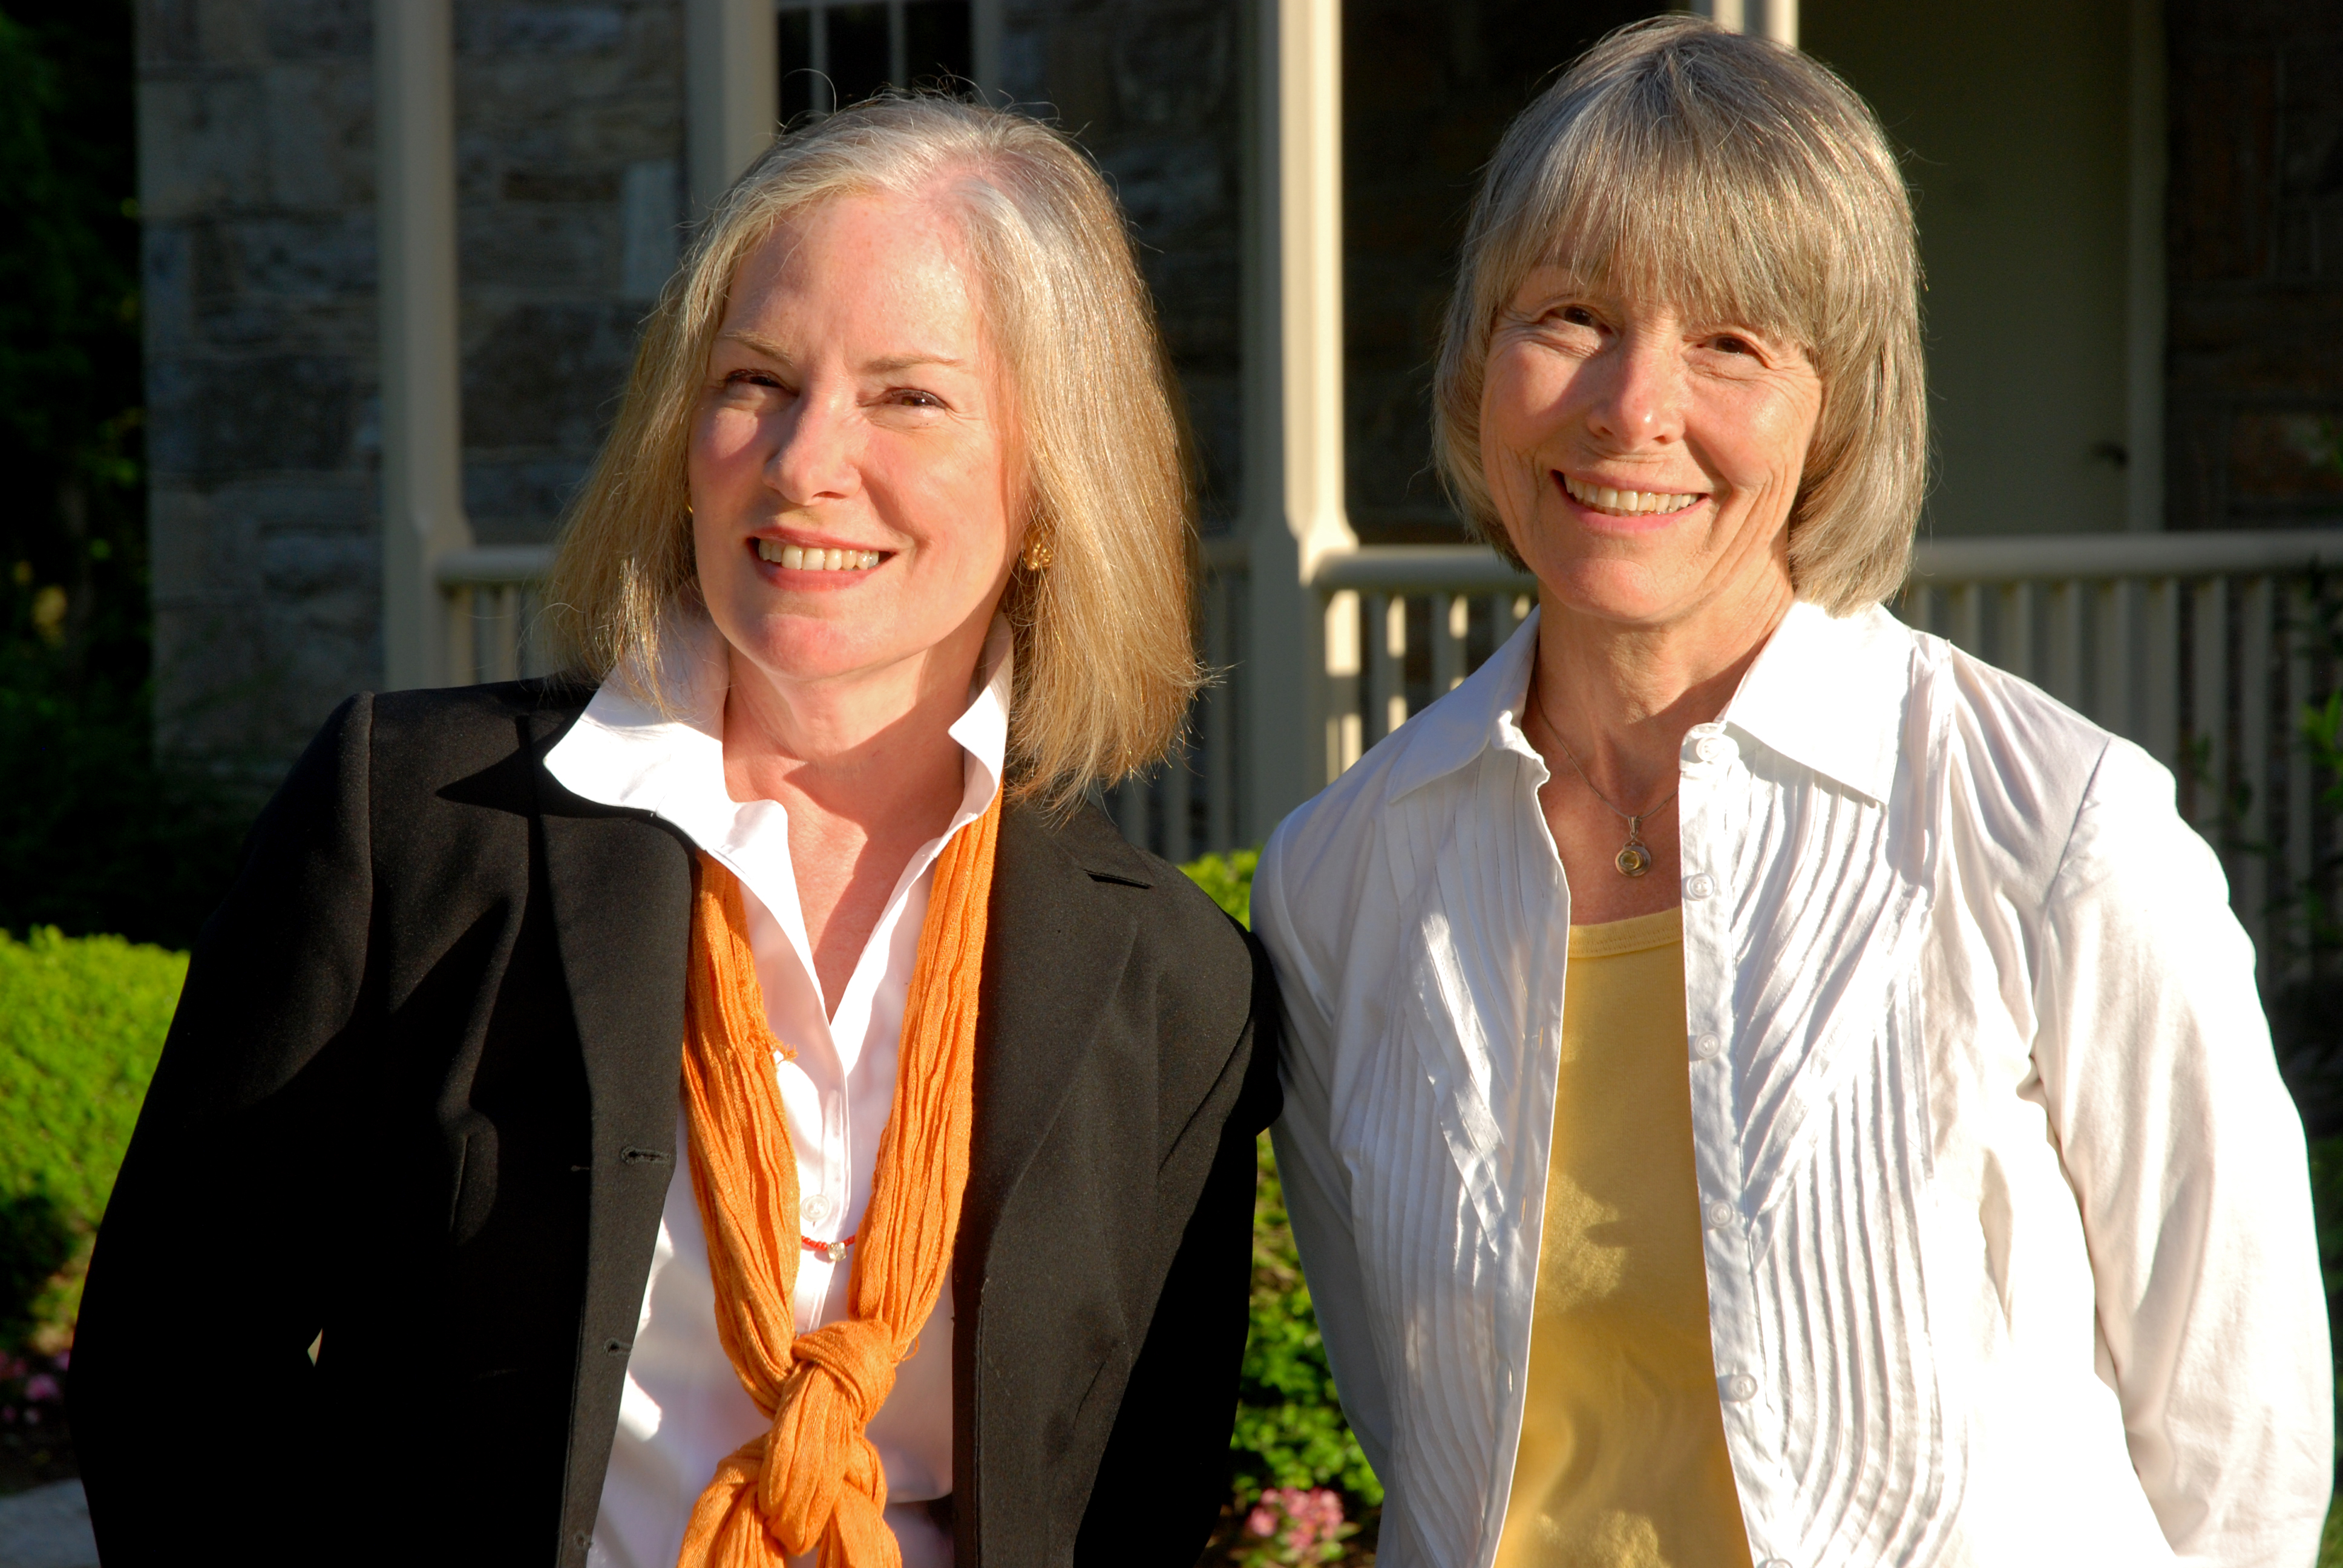 Marie and Maxine Beck